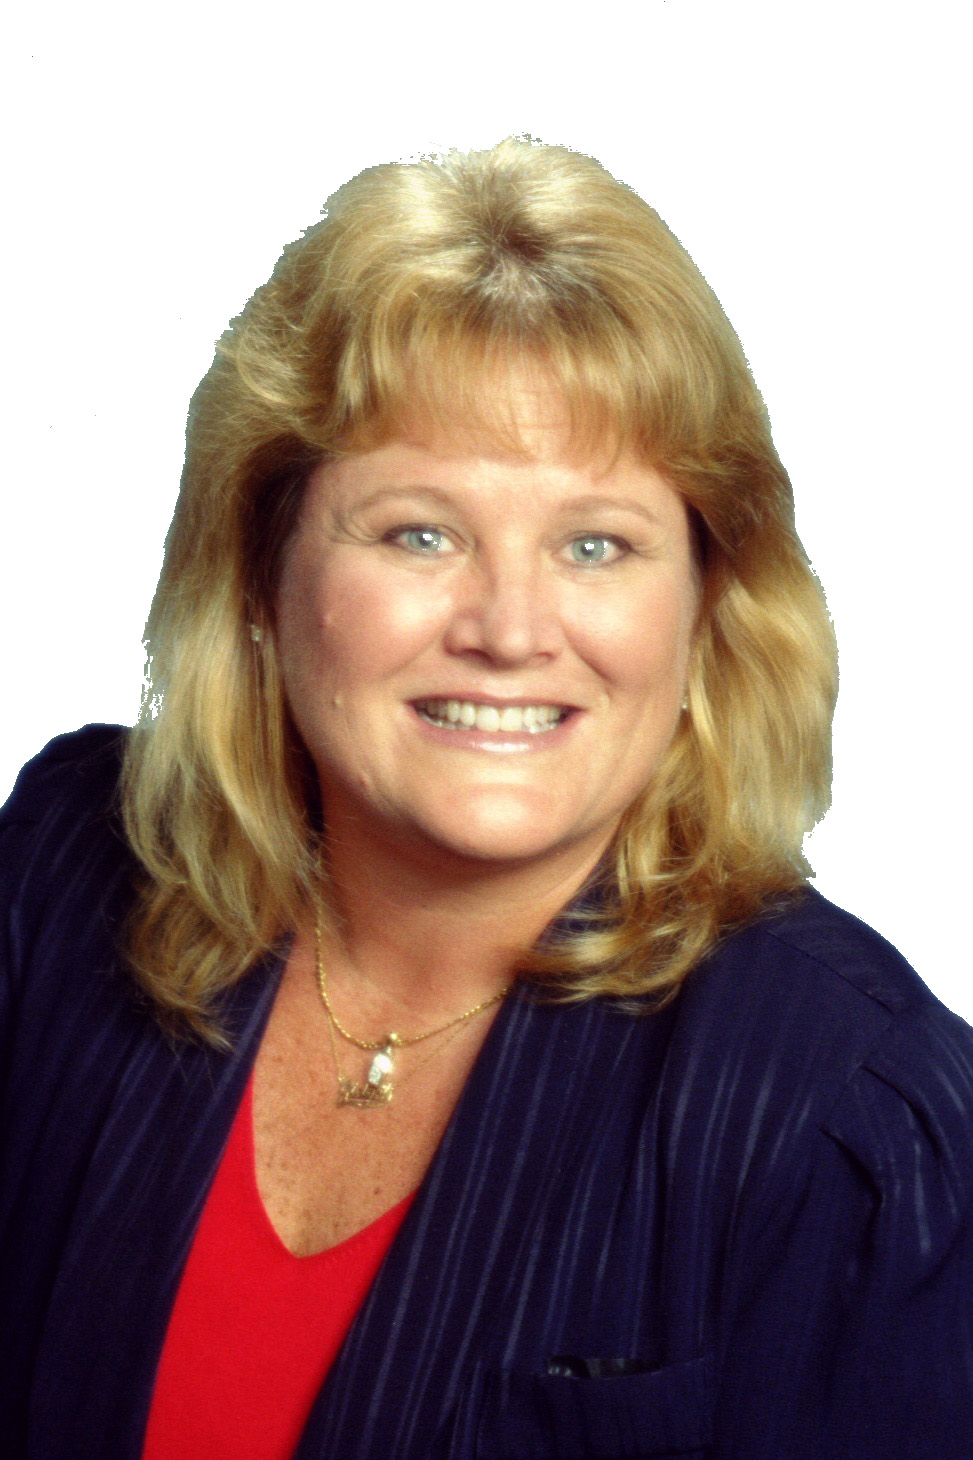 Gidget Gidget is a licensed real estate agent in Marathon FL